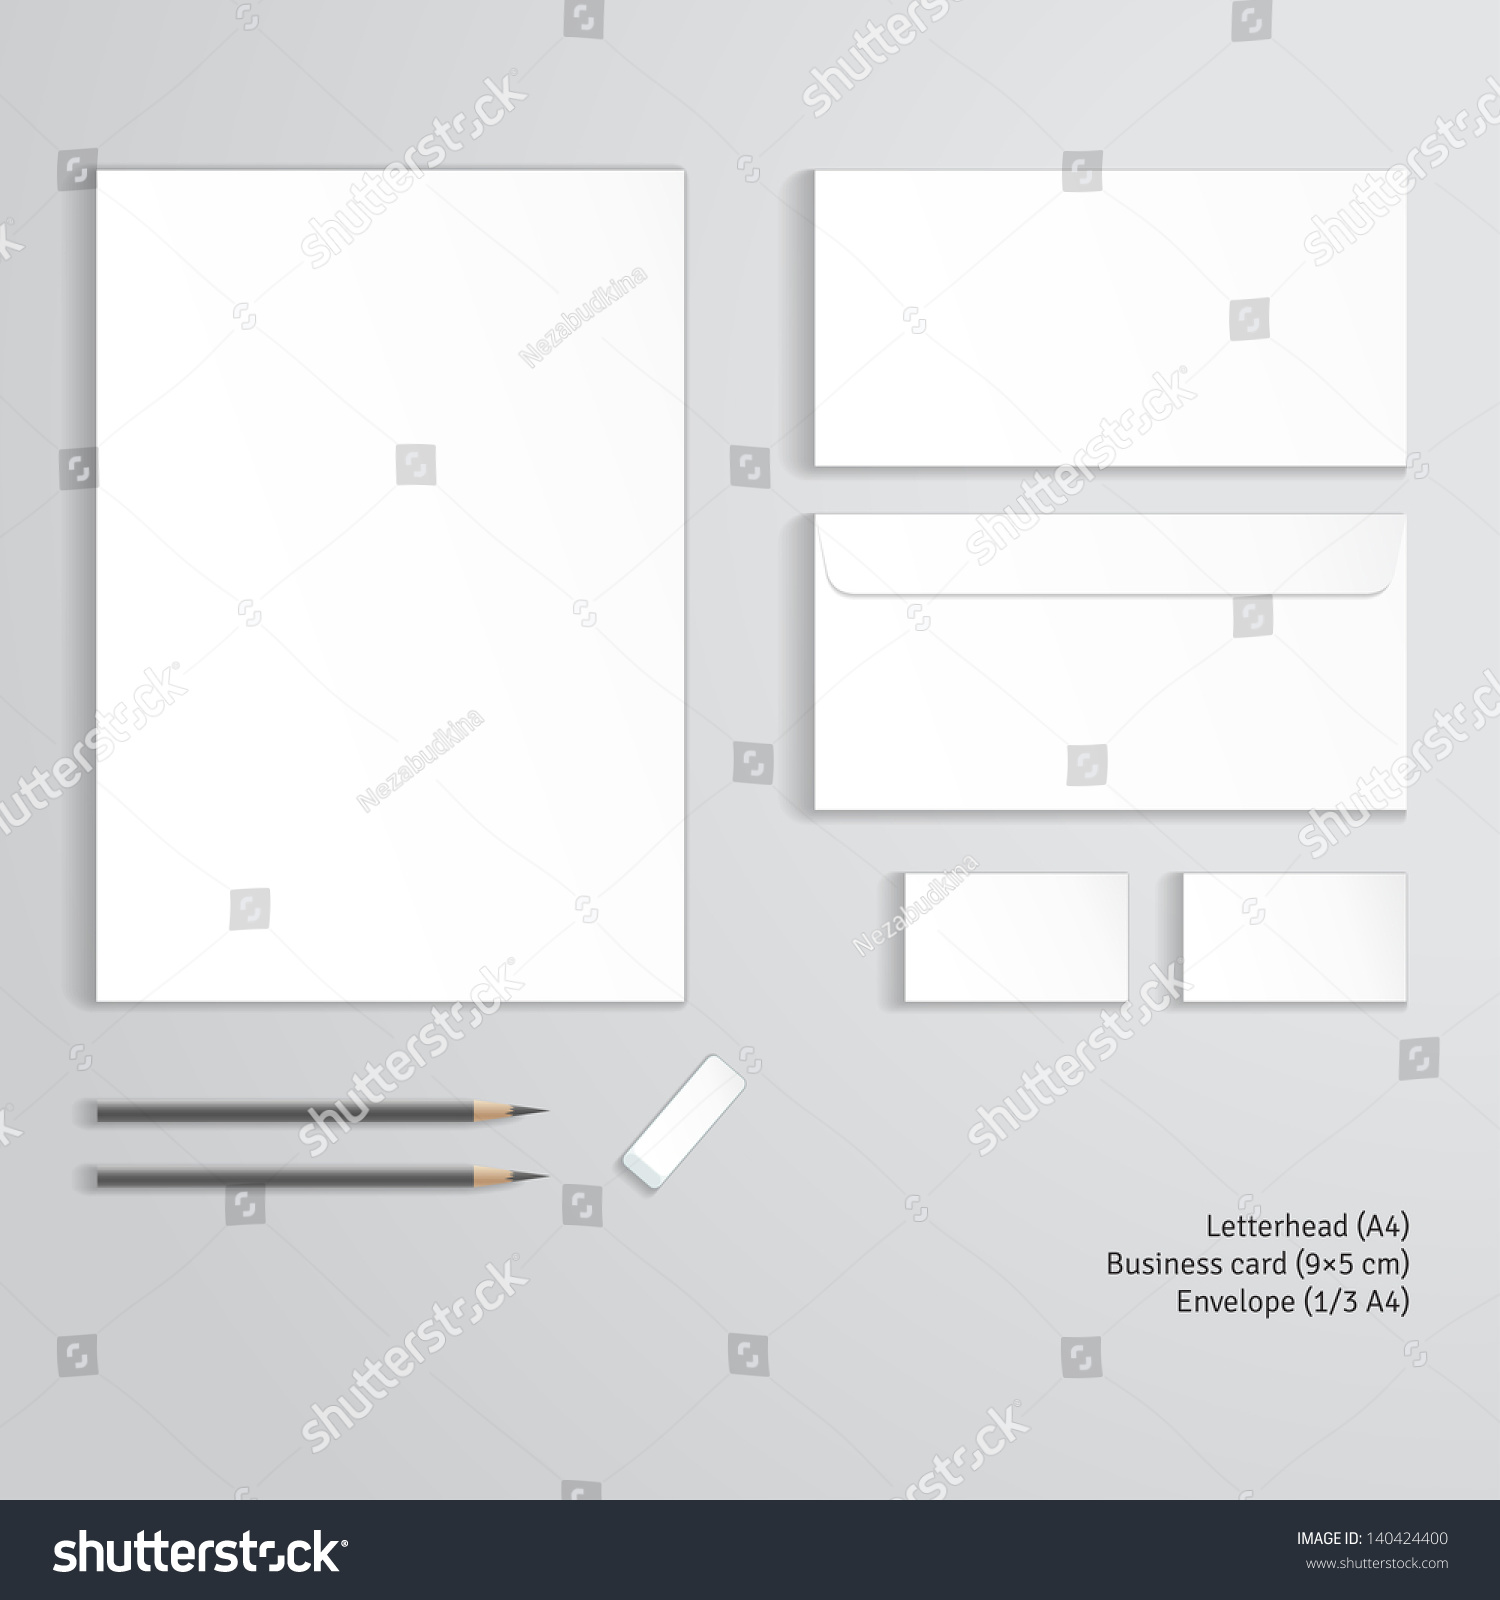 Vector Corporate Identity Templates Letterhead Envelope Stock ...